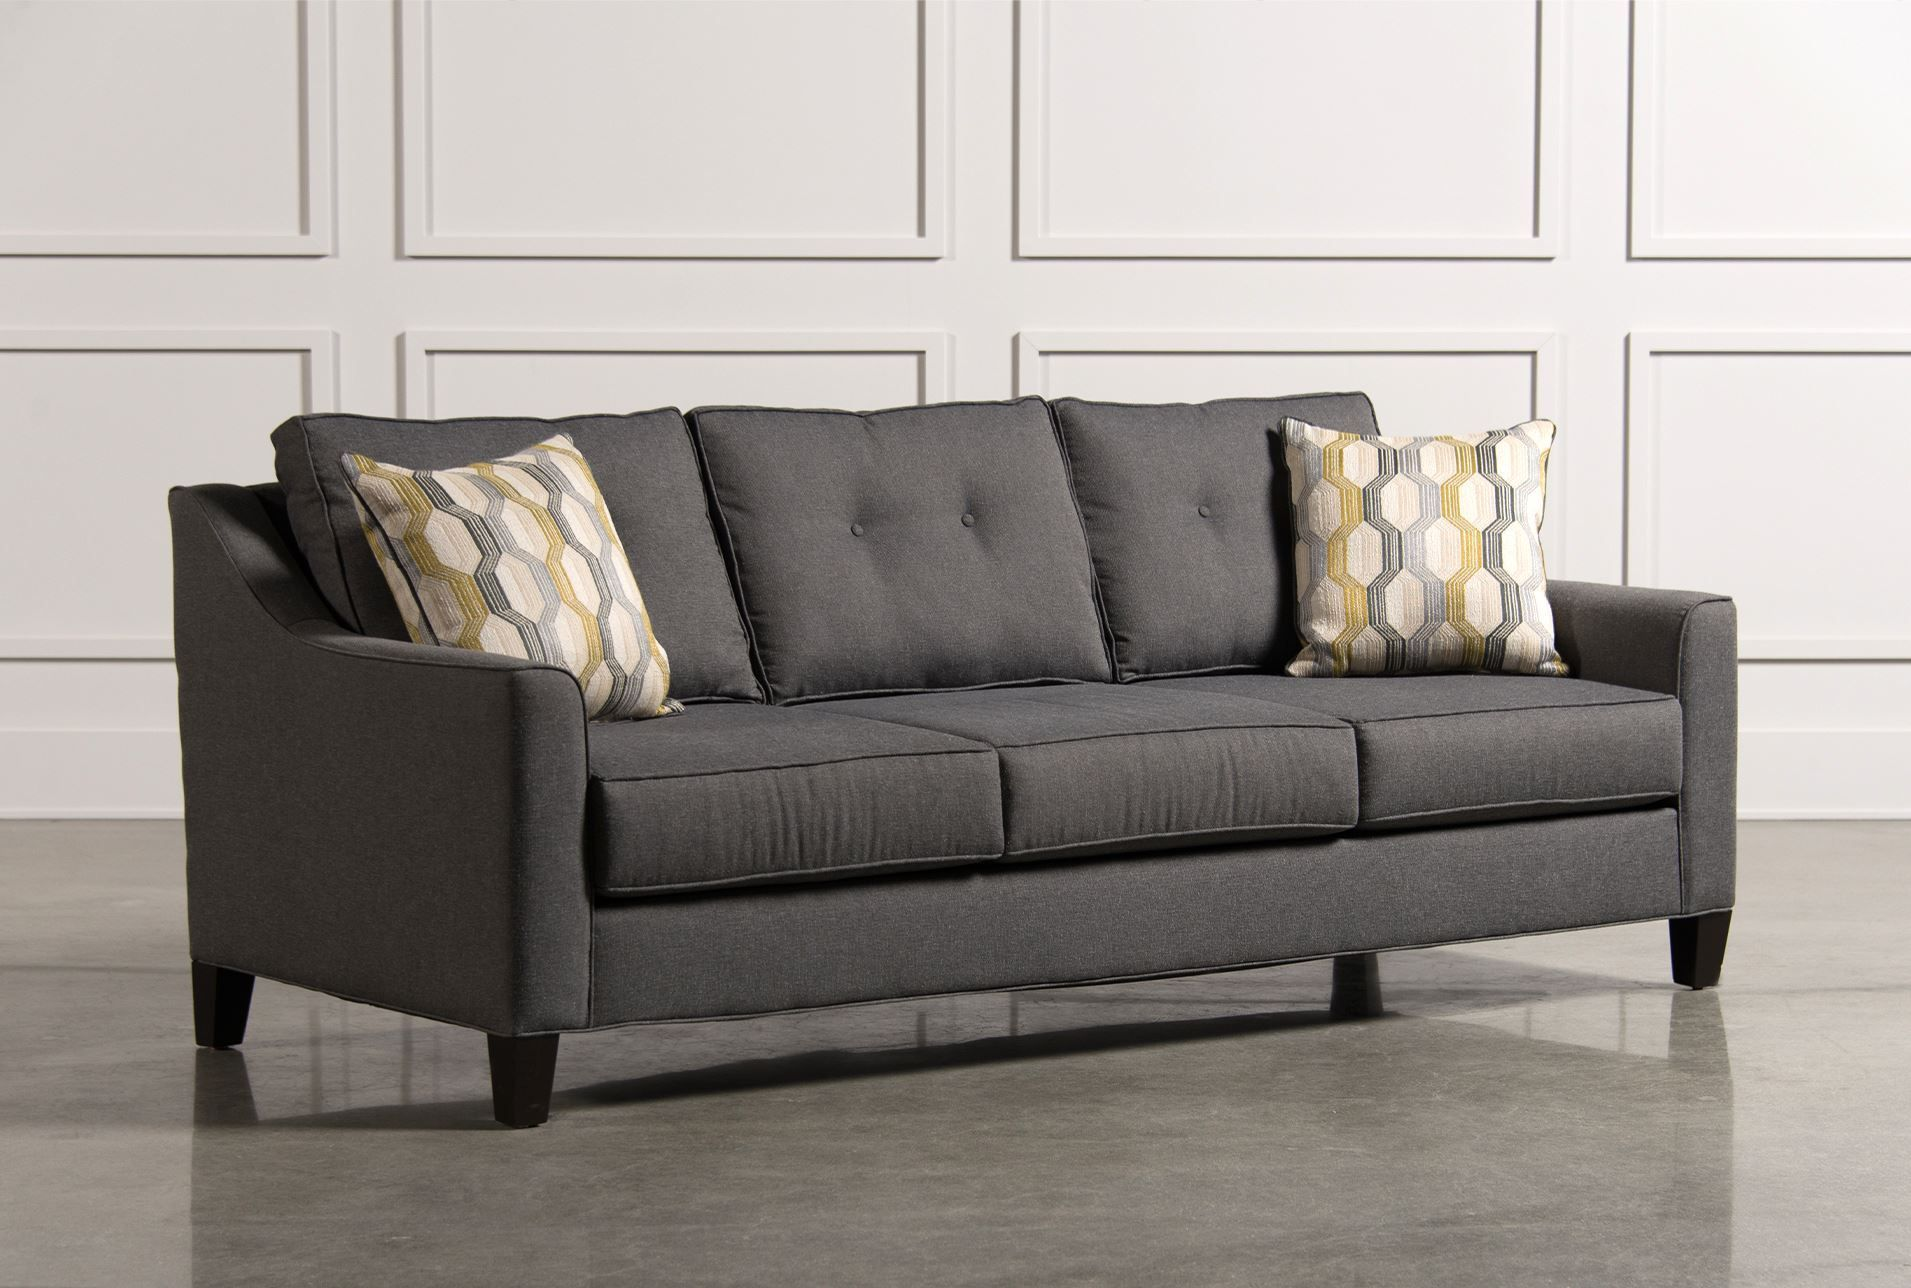 695 90 Wx 41 D Great Reviews Marsden Sofa Signature Living